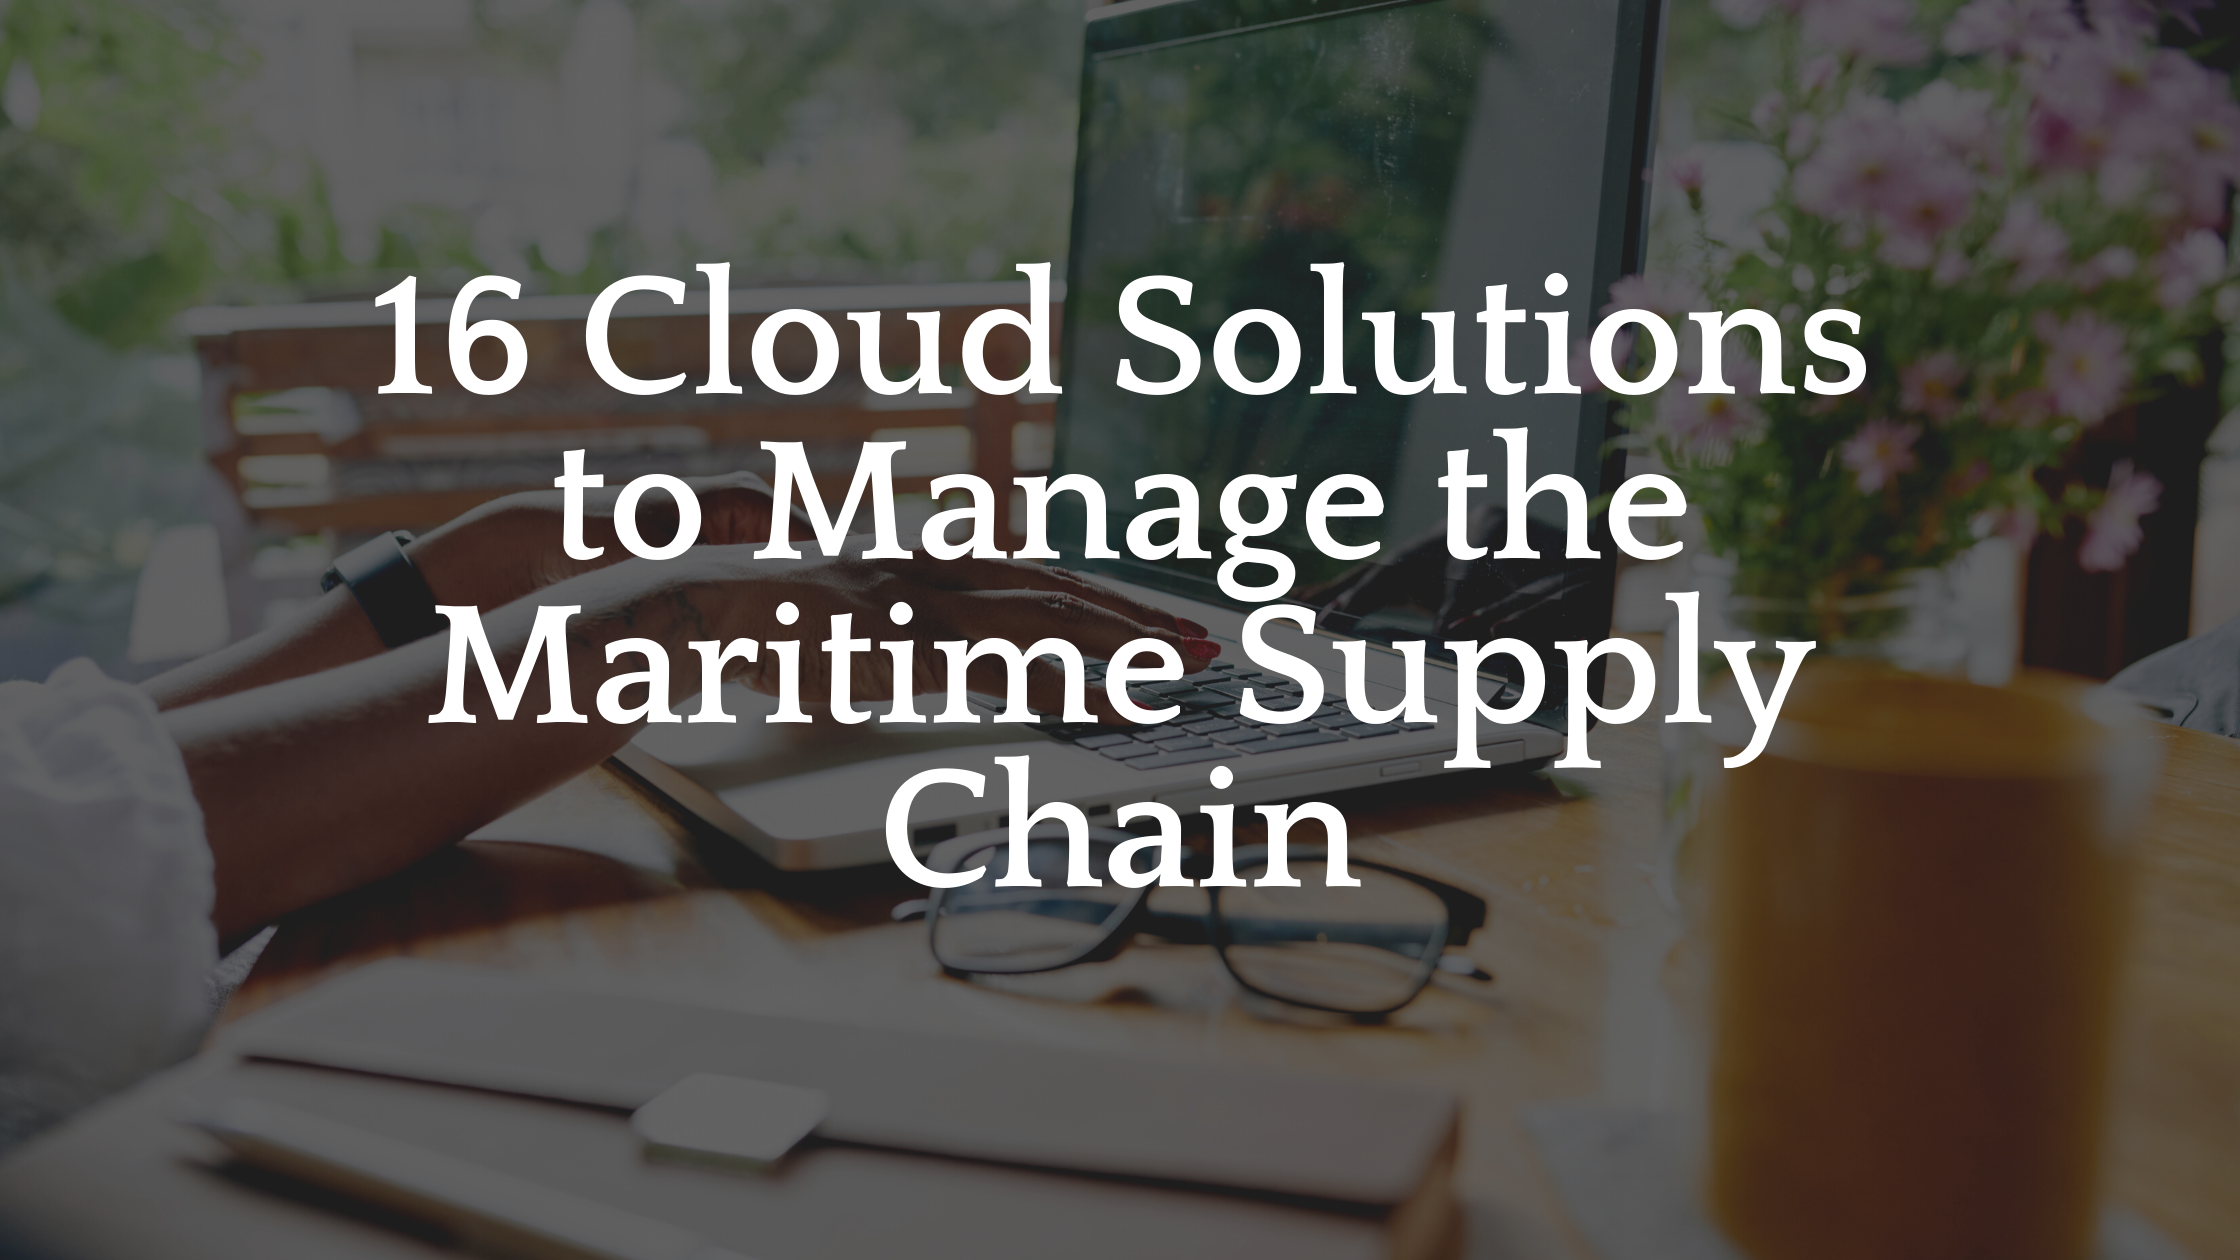 16 Cloud solutions to manage the maritime supply chain